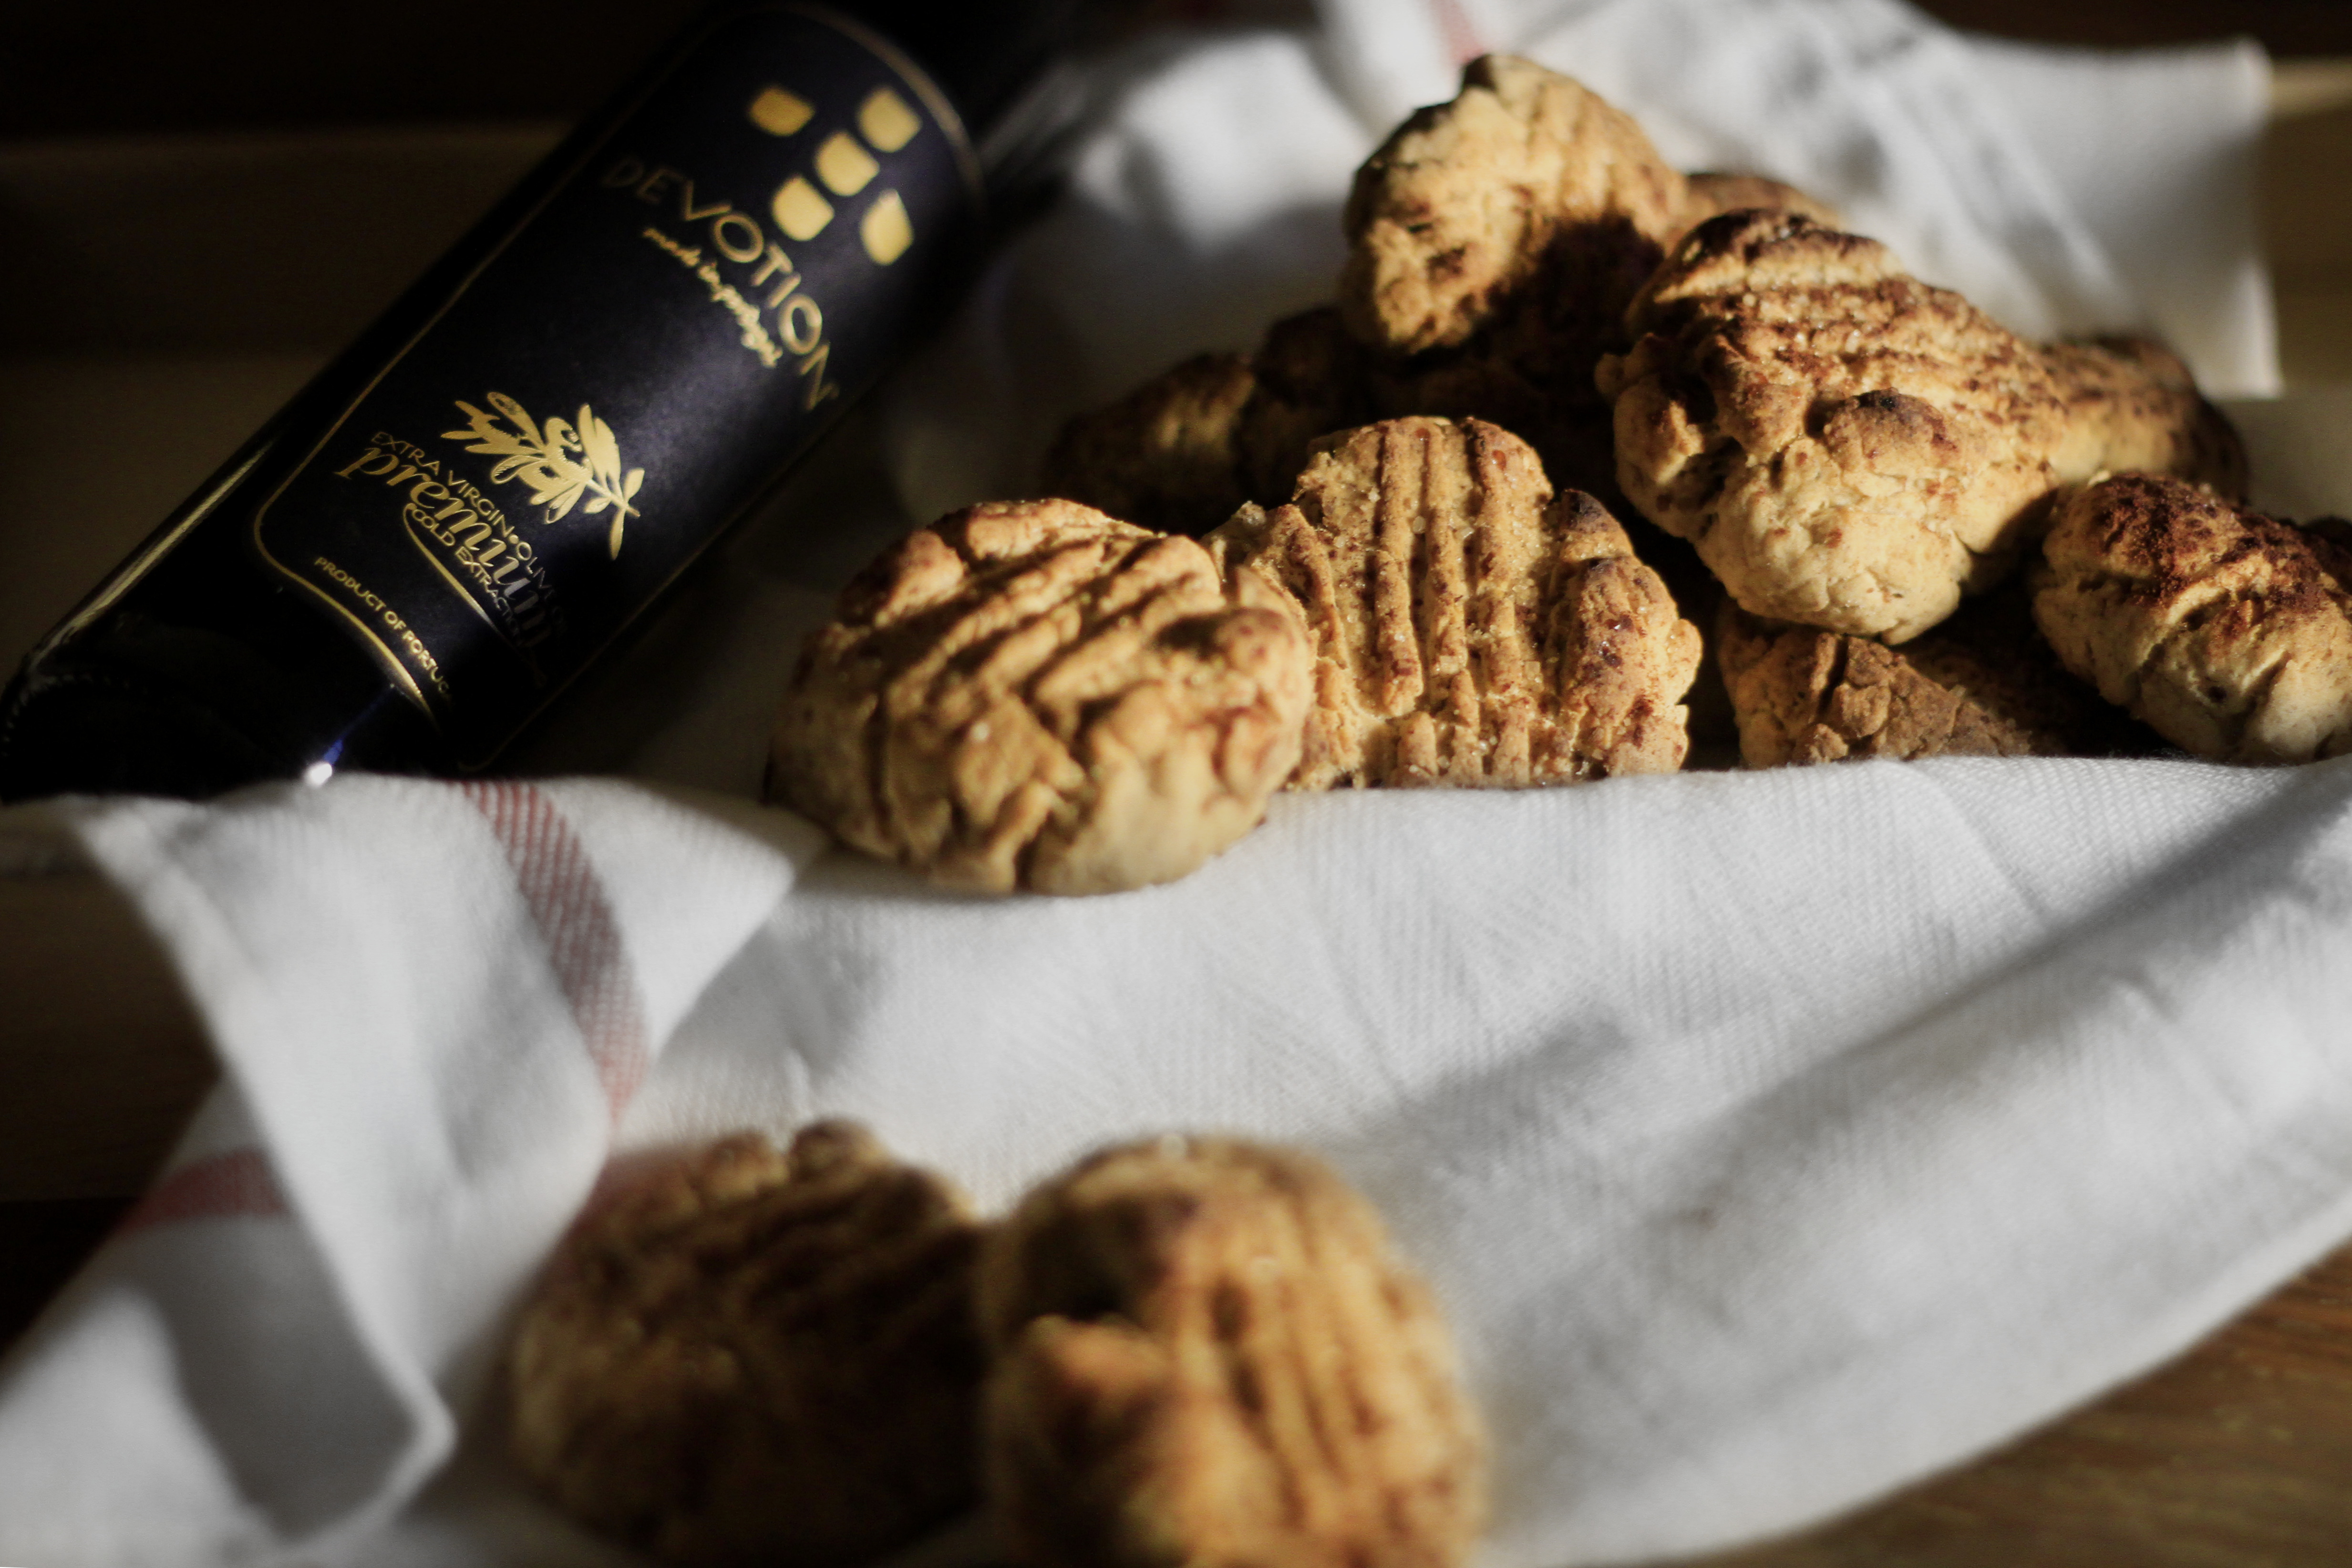 Biscoitos de Azeite e Erva-Doce {Olive Oil and Fennel Biscuits}